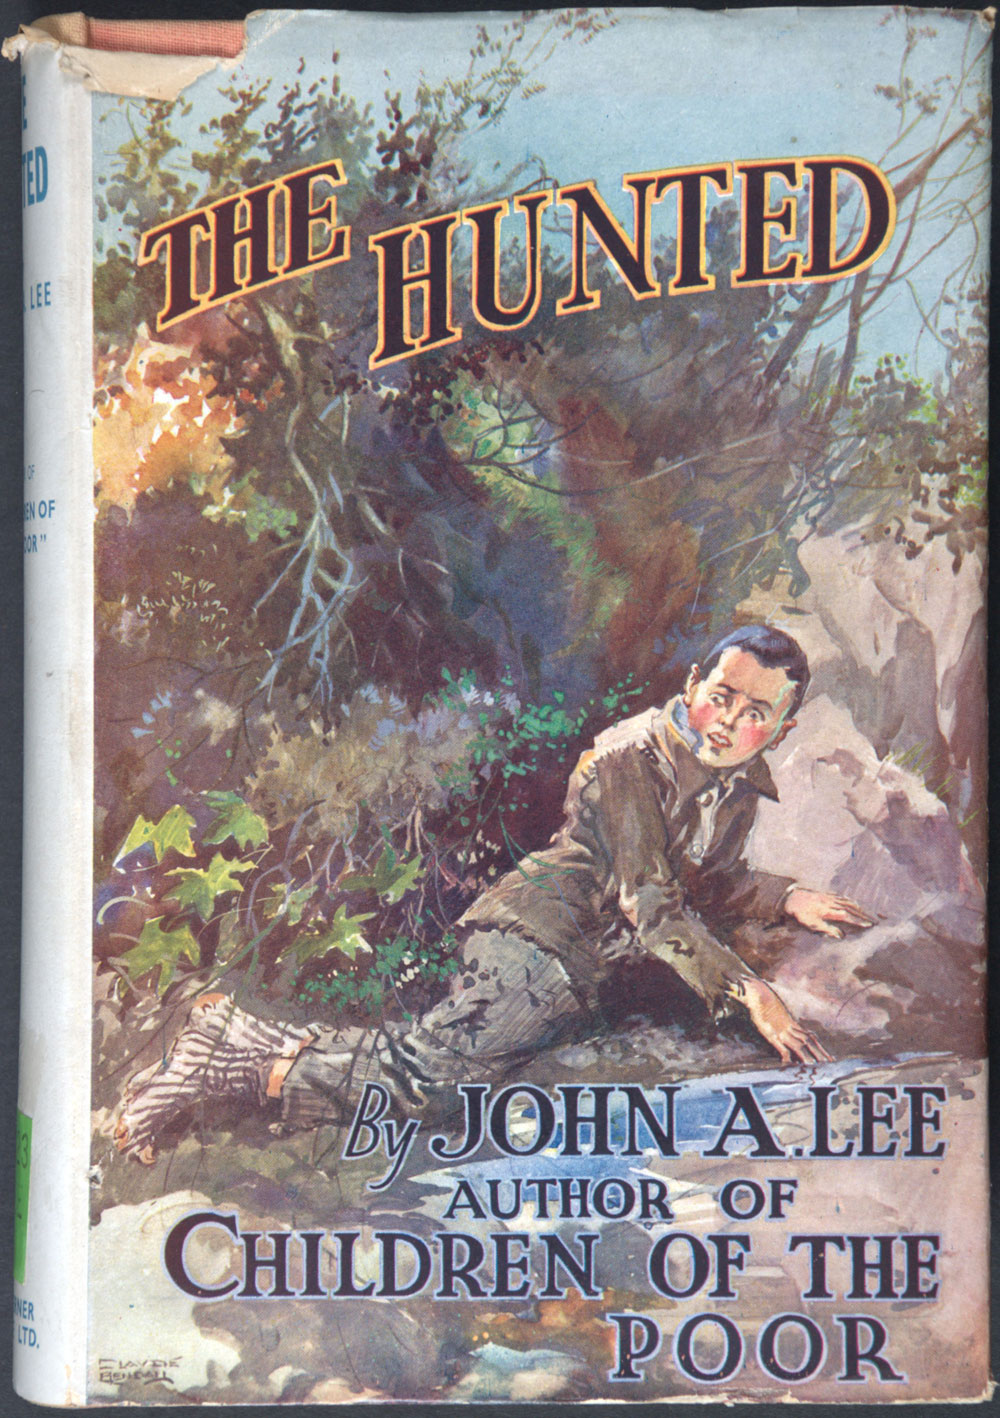 John A. Lee. <em>The hunted. London:</em> T. Werner Laurie Ltd., 1936.